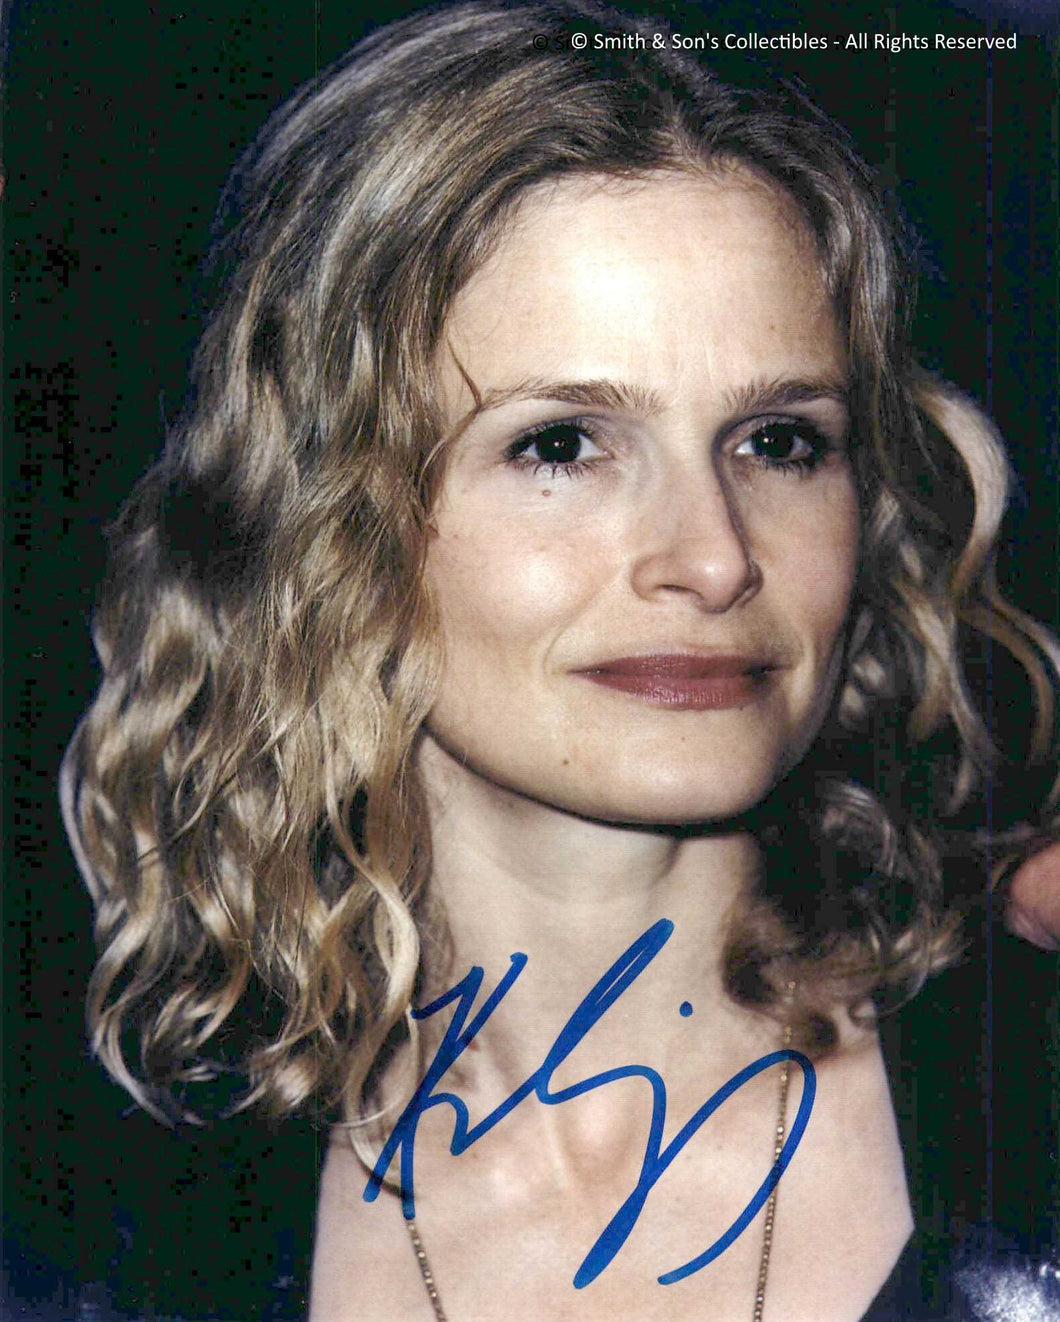 Kyra Sedgwick - Autographed / Signed